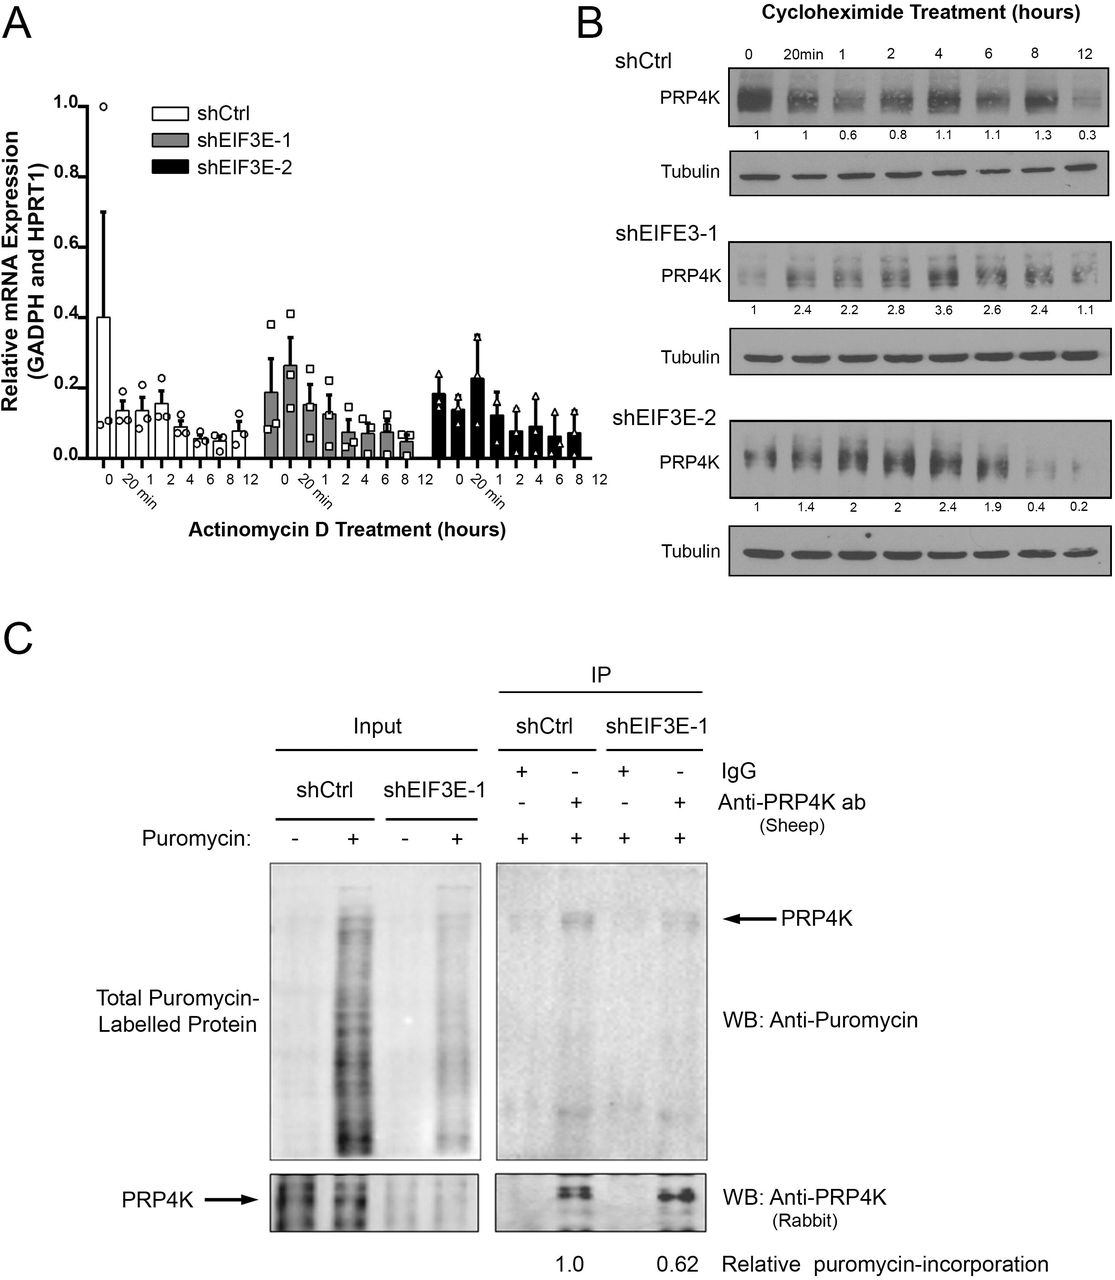 The induction of EMT by depletion of eIF3e negatively regulates the translation of PRP4K in MCF10A cells. A ) Quantitative PCR of PRP4K gene ( PRPF4B ) mRNA expression in control (shCtrl) and eIF3e-depleted (shEIF3E-1 and shEIF3-2) MCF10A cells treated with 10 μg/mL Actinomycin D for the indicated time periods, with data normalized to at least two reference genes as indicated. N = 3, error bars= SEM. Significance was determined by a one-way ANOVA. B ) Western blot analysis of whole cell lysates of MCF10A shCtrl and shEIF3E cells treated with 50μg/mL cycloheximide for the indicated time periods. C ) Puromycin incorporation assay of MCF10A shCtrl and shEIF3E cells. Cells were grown for 24 h without puromycin selection and then pulsed with puromycin prior to Western blot analysis of total cell lysates (left) or following immunoprecipitation (IP) of PRP4K and detection of puromycylation of proteins and PRP4K (right).